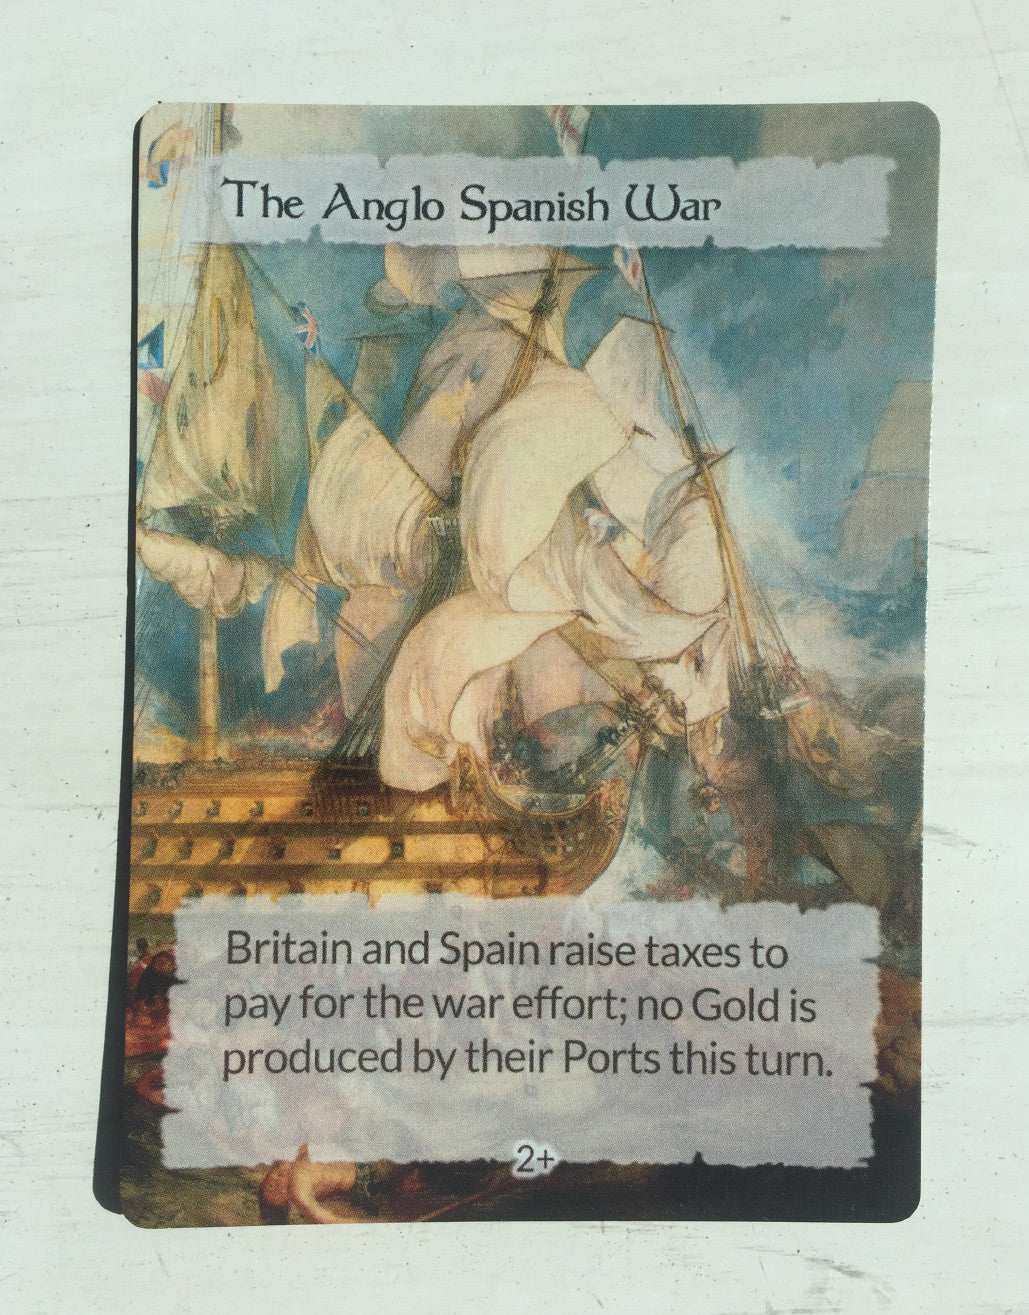 The Anglo Spanish War